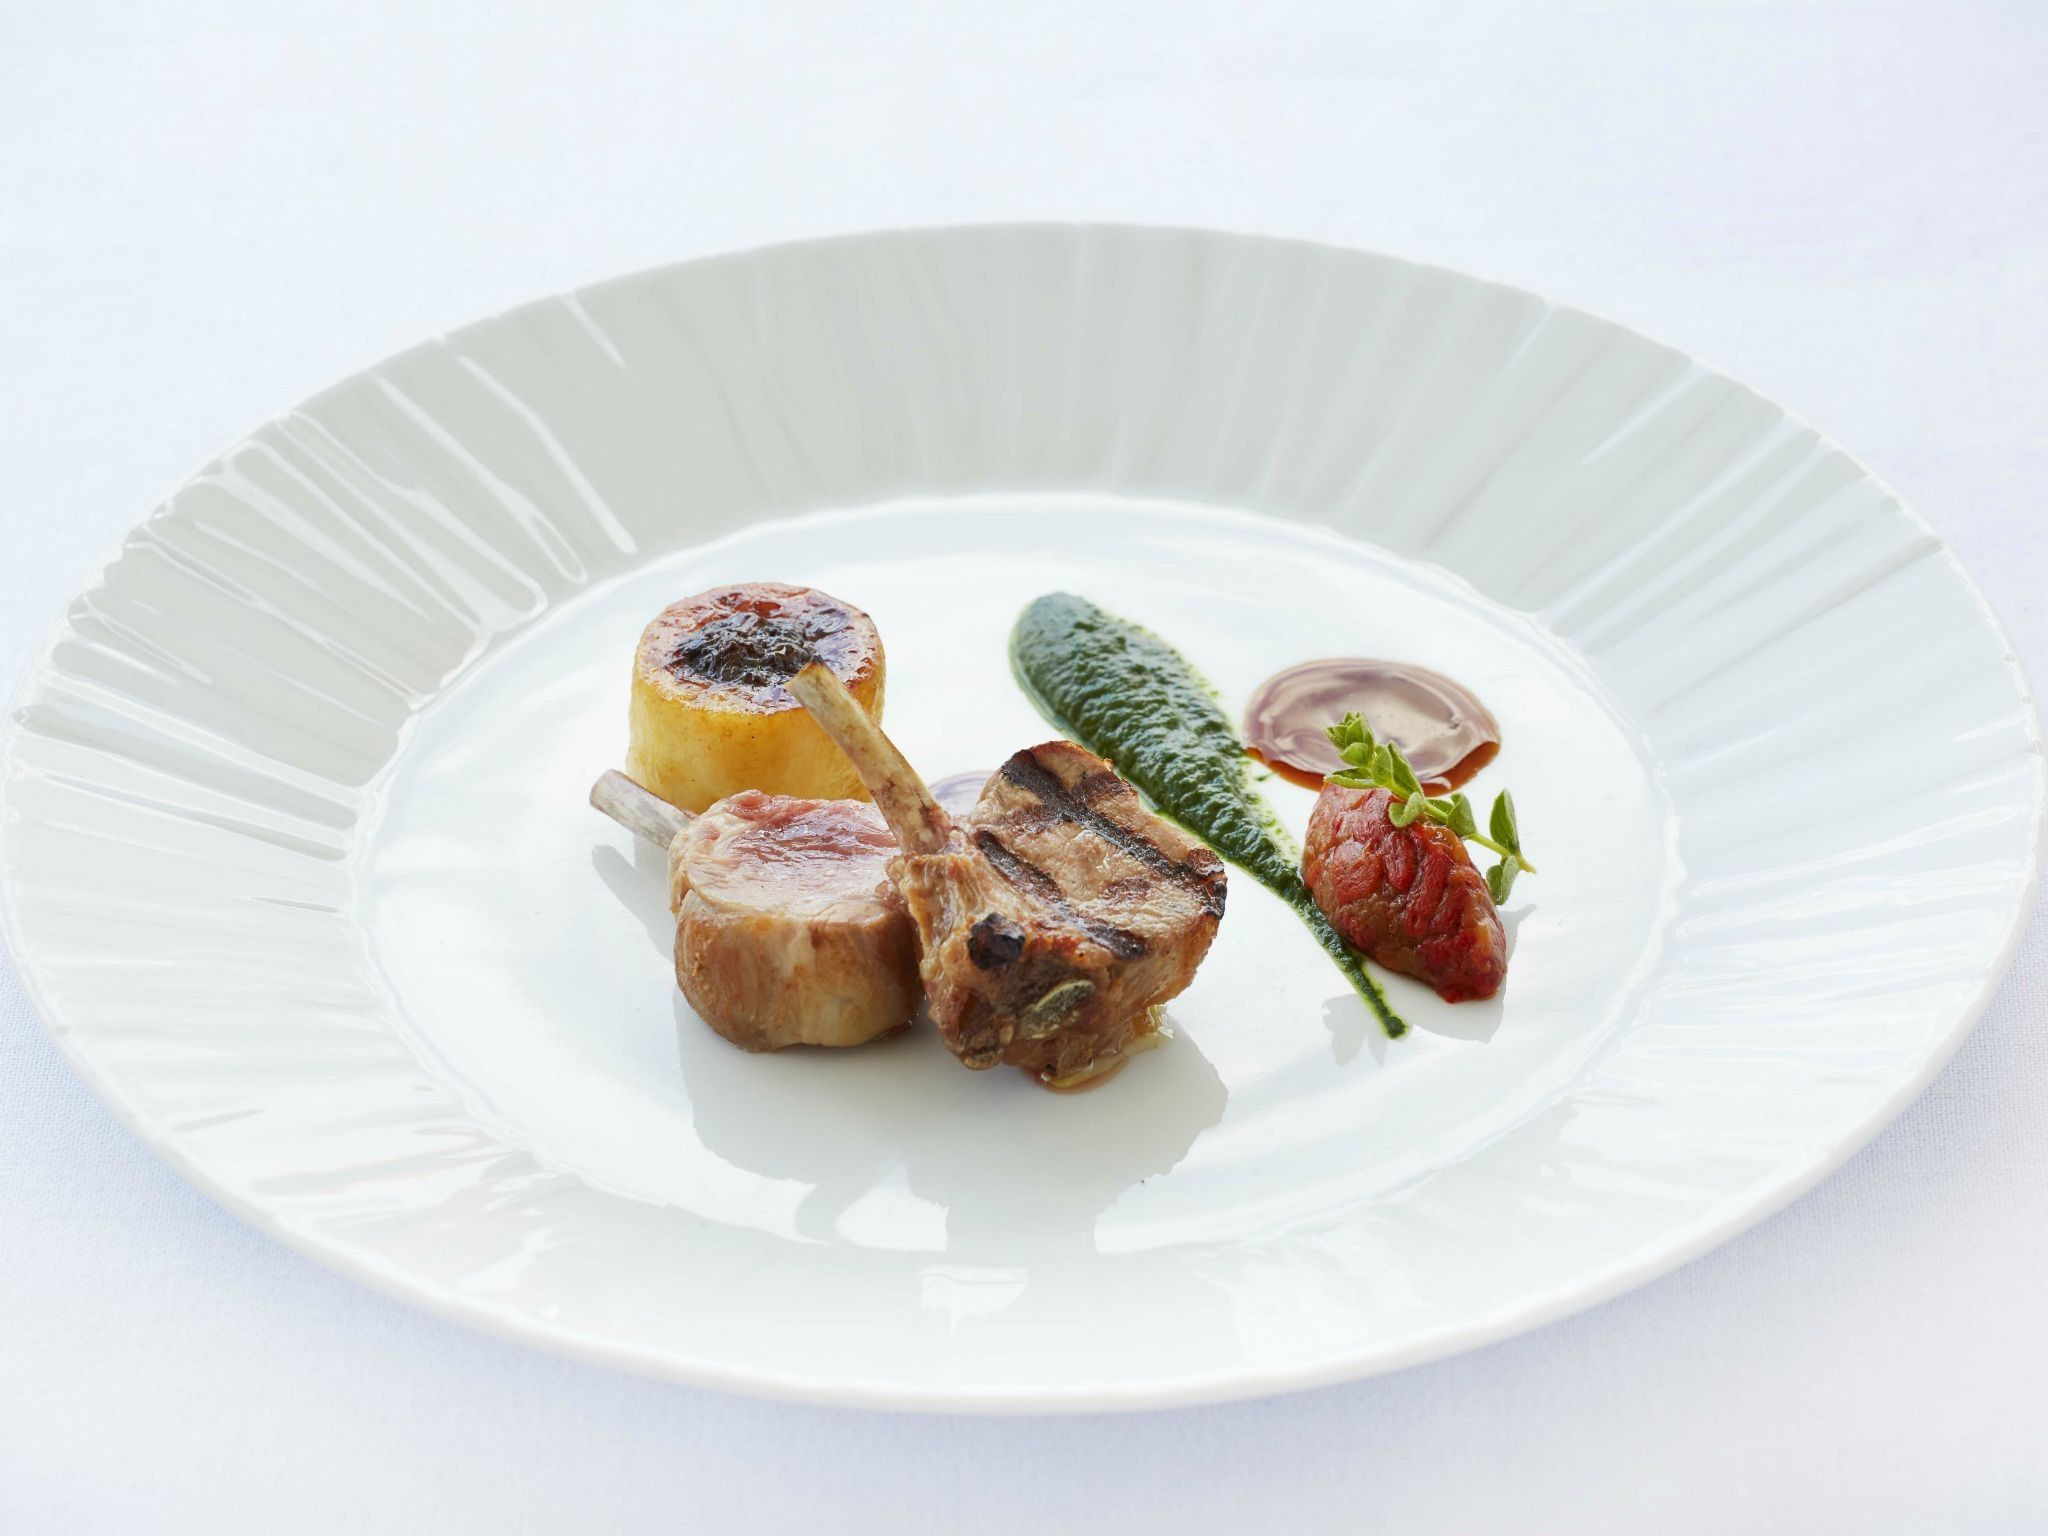 "=""Lamb-cutlets-stuffed-potato-parsley-sauce-and-smoked-Florinis-pepper-GB-Roof-Garden-Restaurant""/"